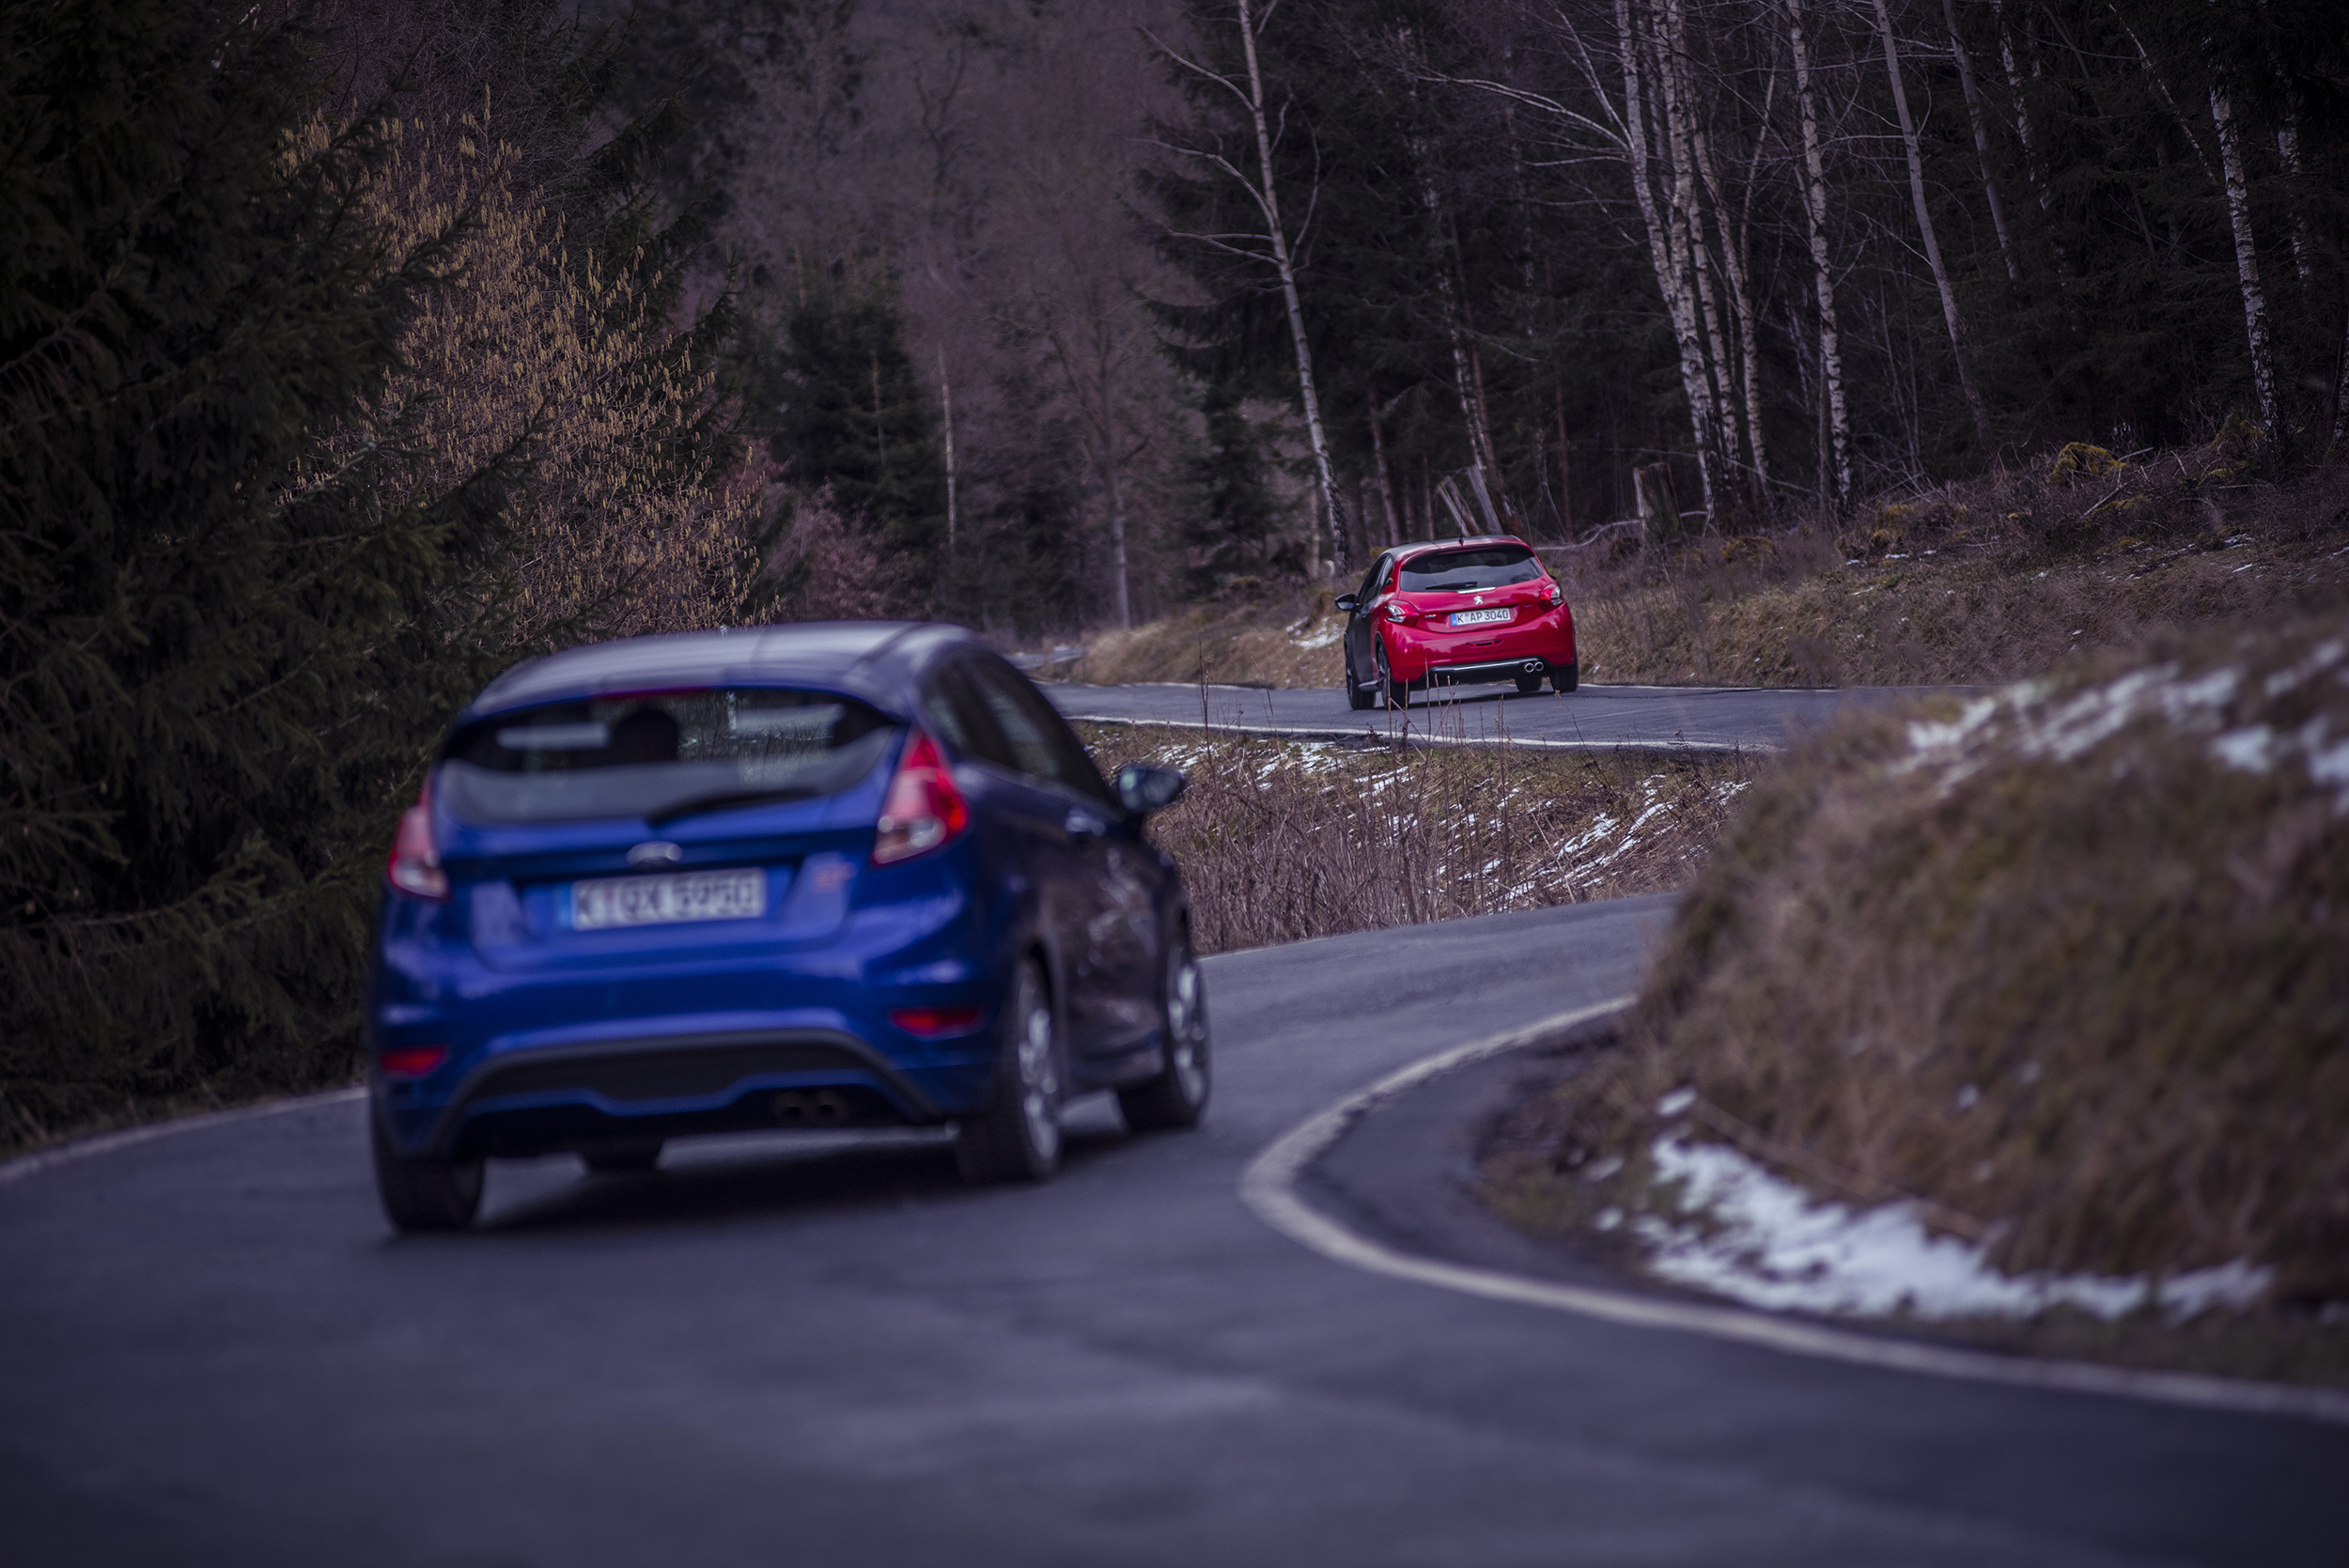 Peugeot 208 GTi Ford Fiesta ST - Sytse Dijkstra - Autovisie.nl